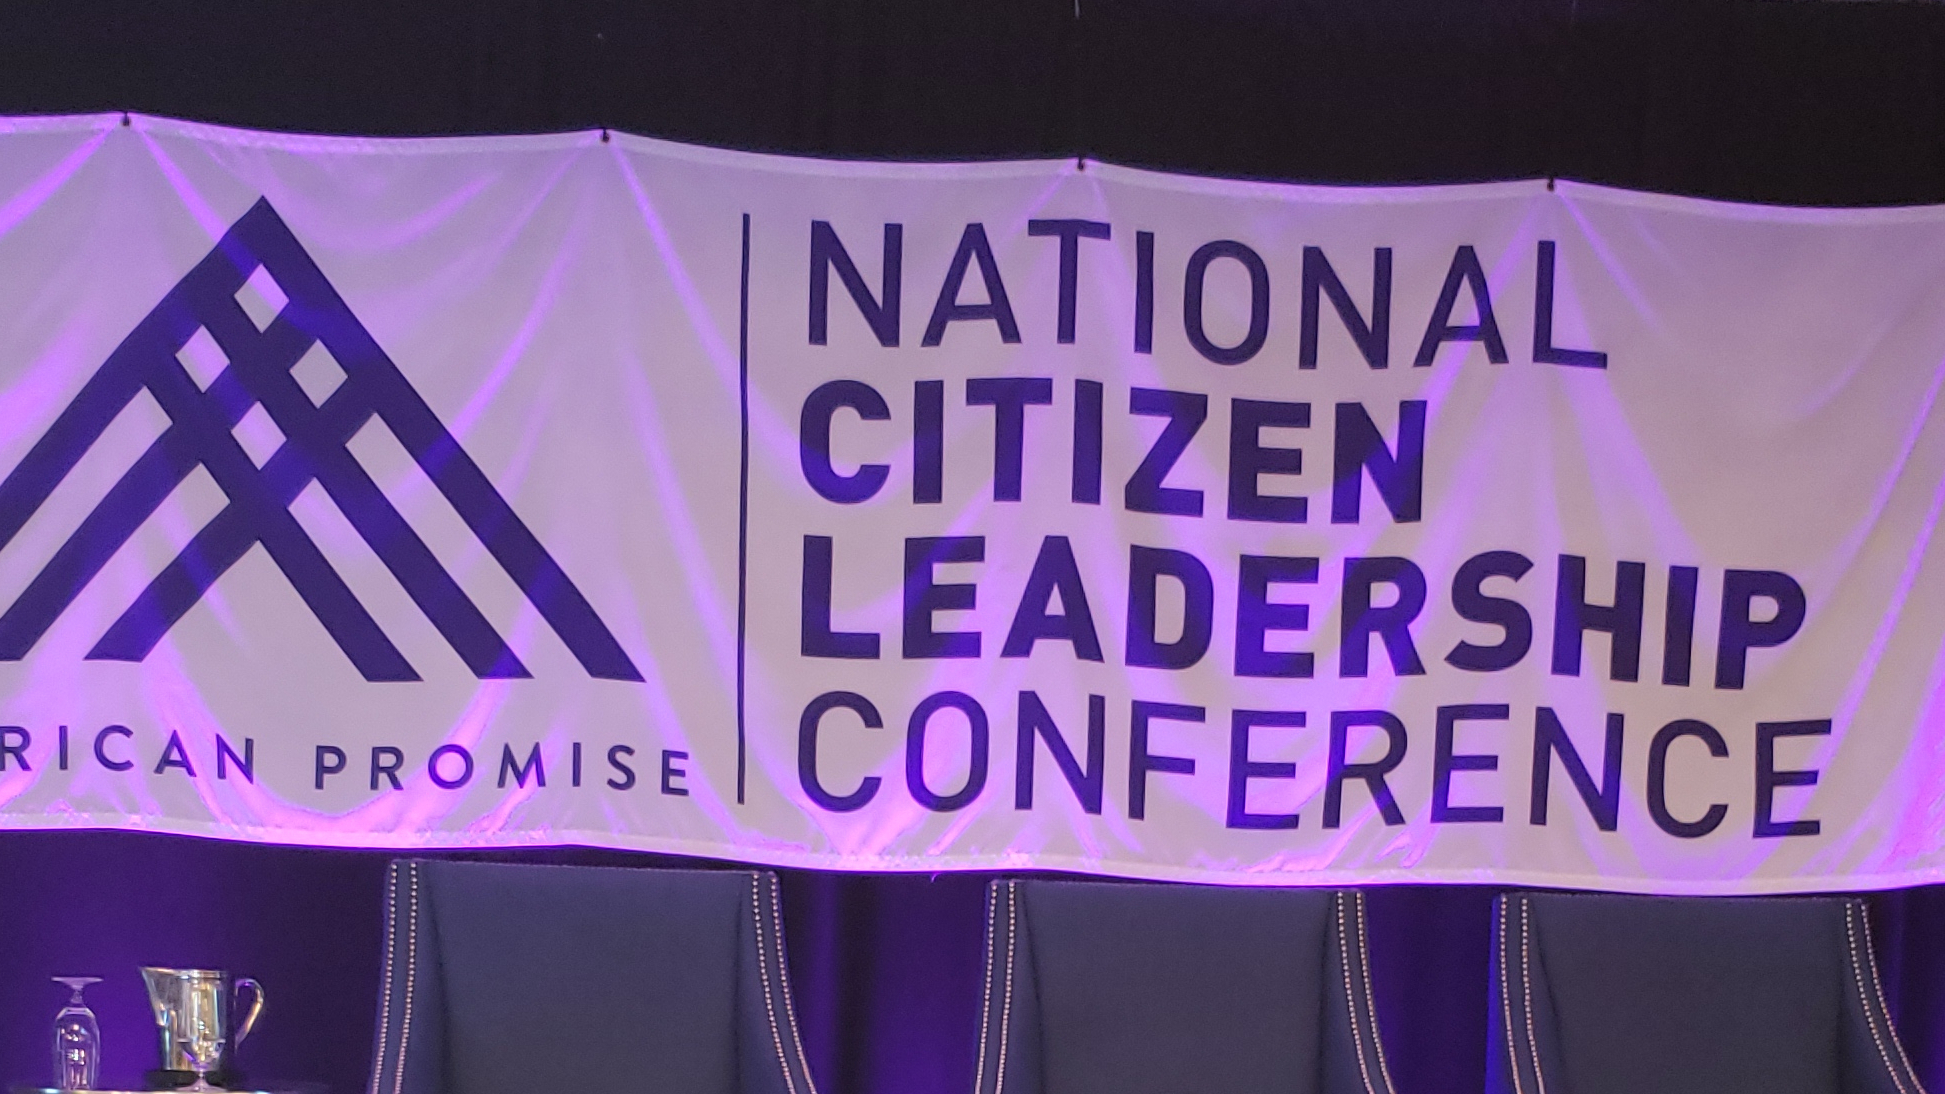 The 3rd National Citizen Leadership Conference which is taking place from October 19th to October 21st, 2019